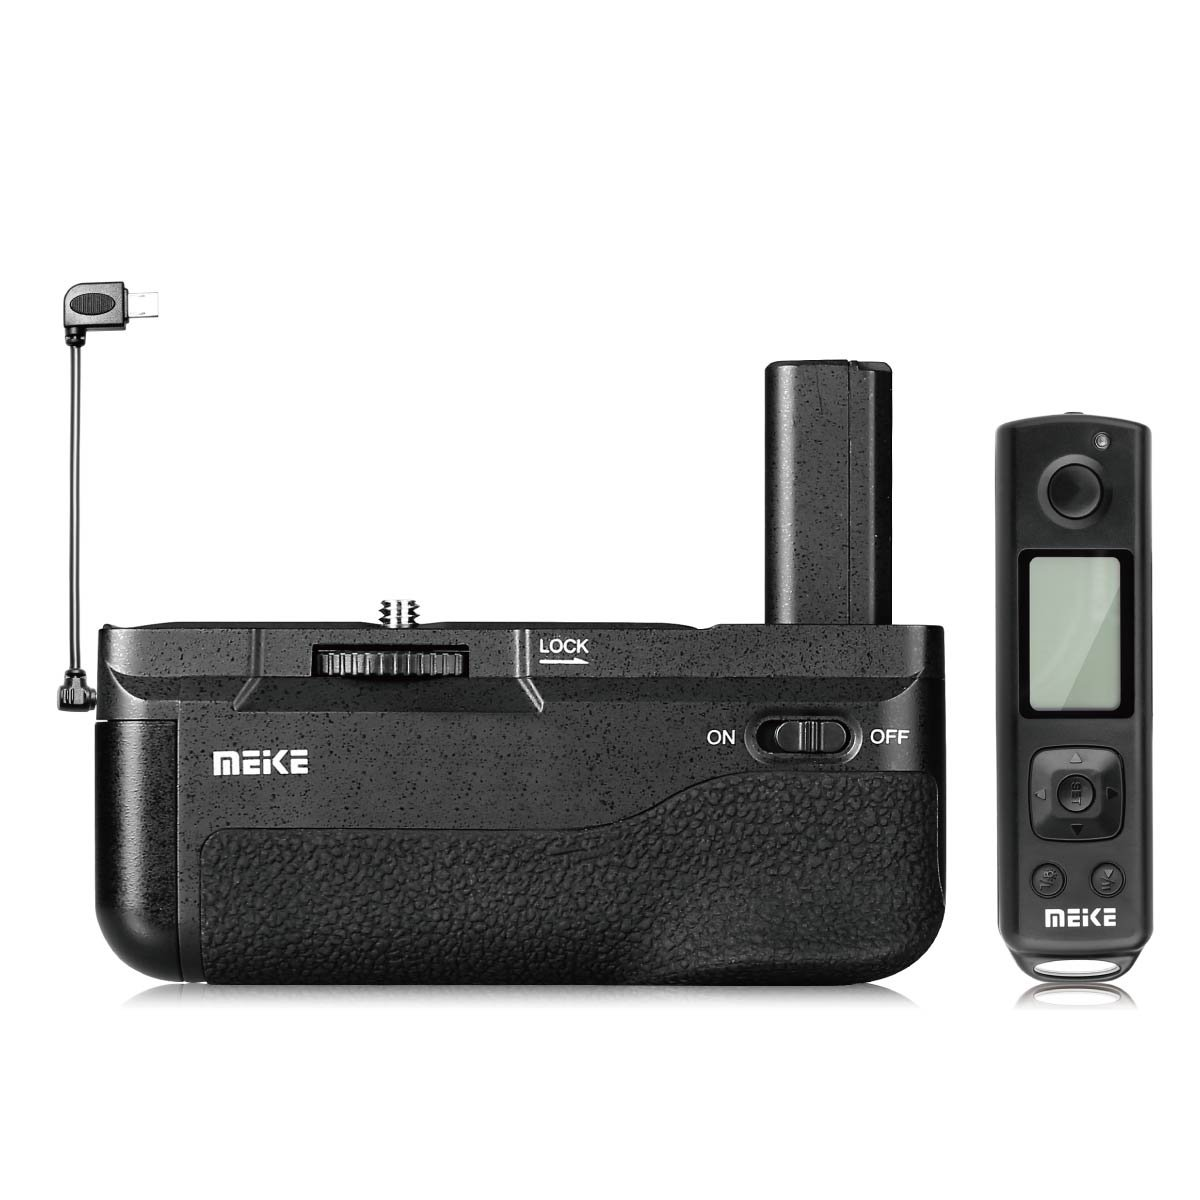 Meike MK-A6300 PRO Built-in 2.4GHZ Remote Controller Up to 100M to Control Shooting for Sony A6400 A6300 A6000 Camera